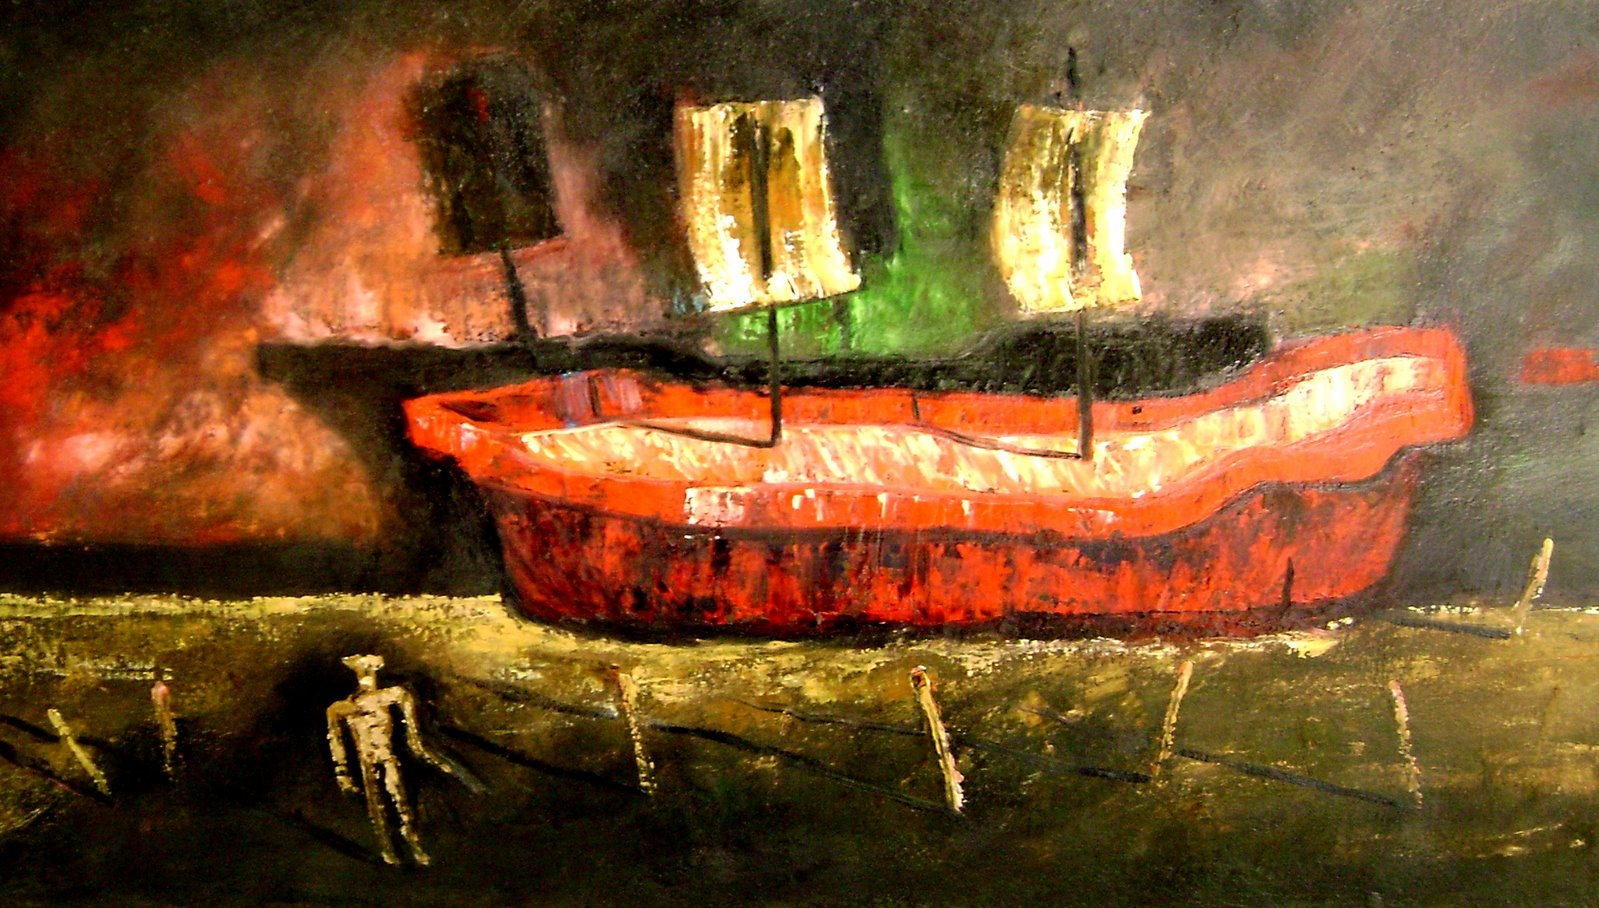 Both/oil on canvas/55 cm. x36 cm./2007 / US $300